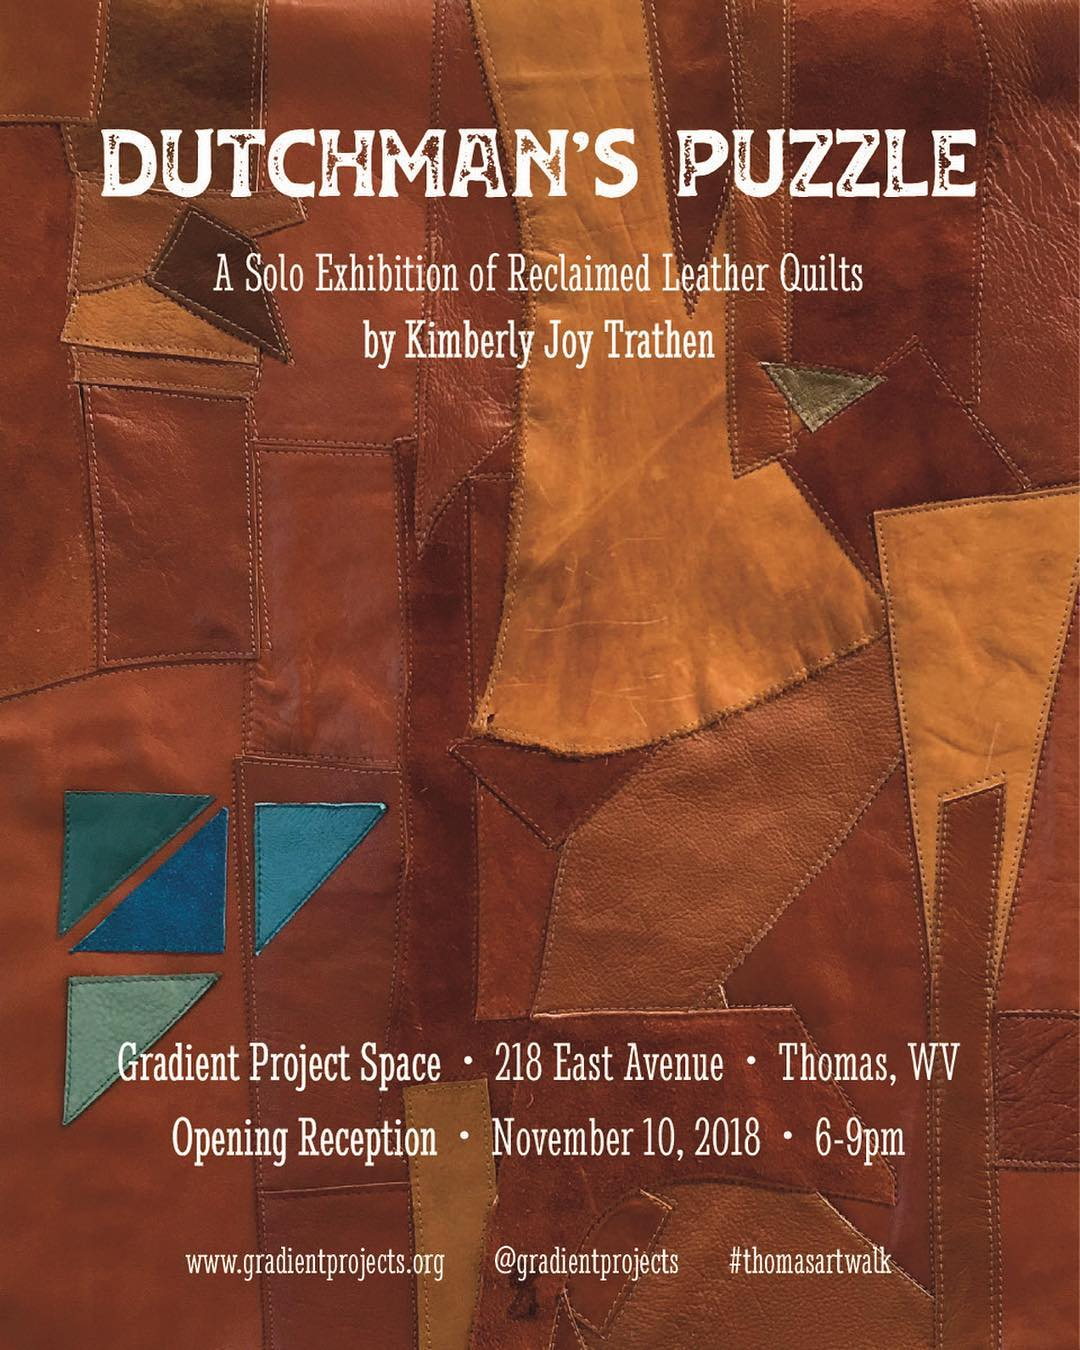 This Saturday!  We're opening a new solo show of reclaimed leather quilts by Kimberly Joy Trathen (@backstitched_design) … Also in town as part of #thomasartwalk : … Counterstitch, a group show with @frockandrollwv, @coffeebitch666 & @rebgracelaw at @offwhite_studios / @whiteroomofthomas … Then and Now, a solo show with @suzanneteune at @lamplightgallery. … And 'Stange Drink', a new series by @theartofseth at @creatureofthomaswv. … We hope to see you then. #thomasartwalk